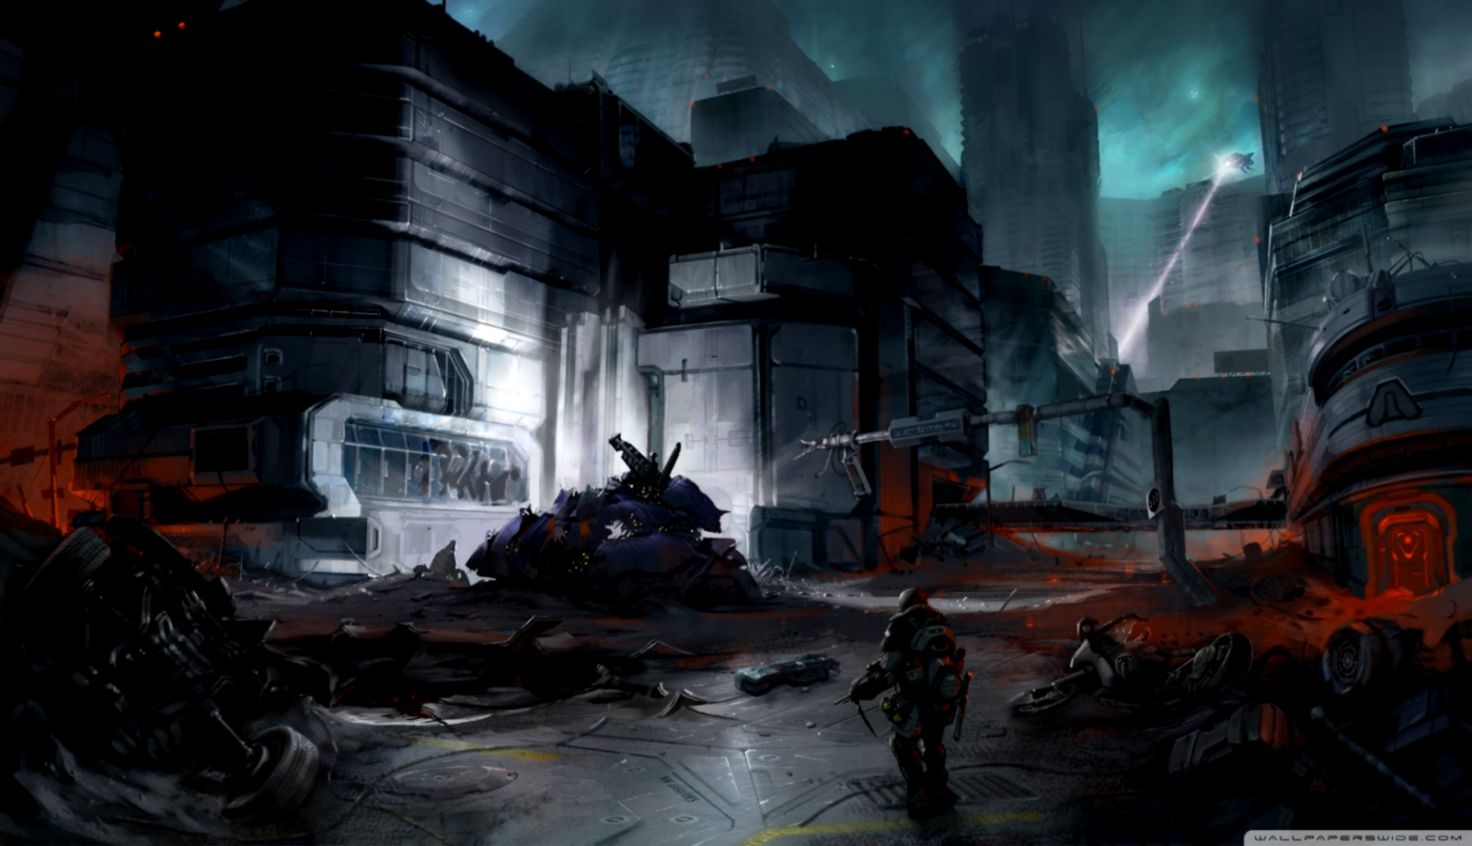 Halo 3 Odst Gaming Wallpaper Wallpapers Pretty